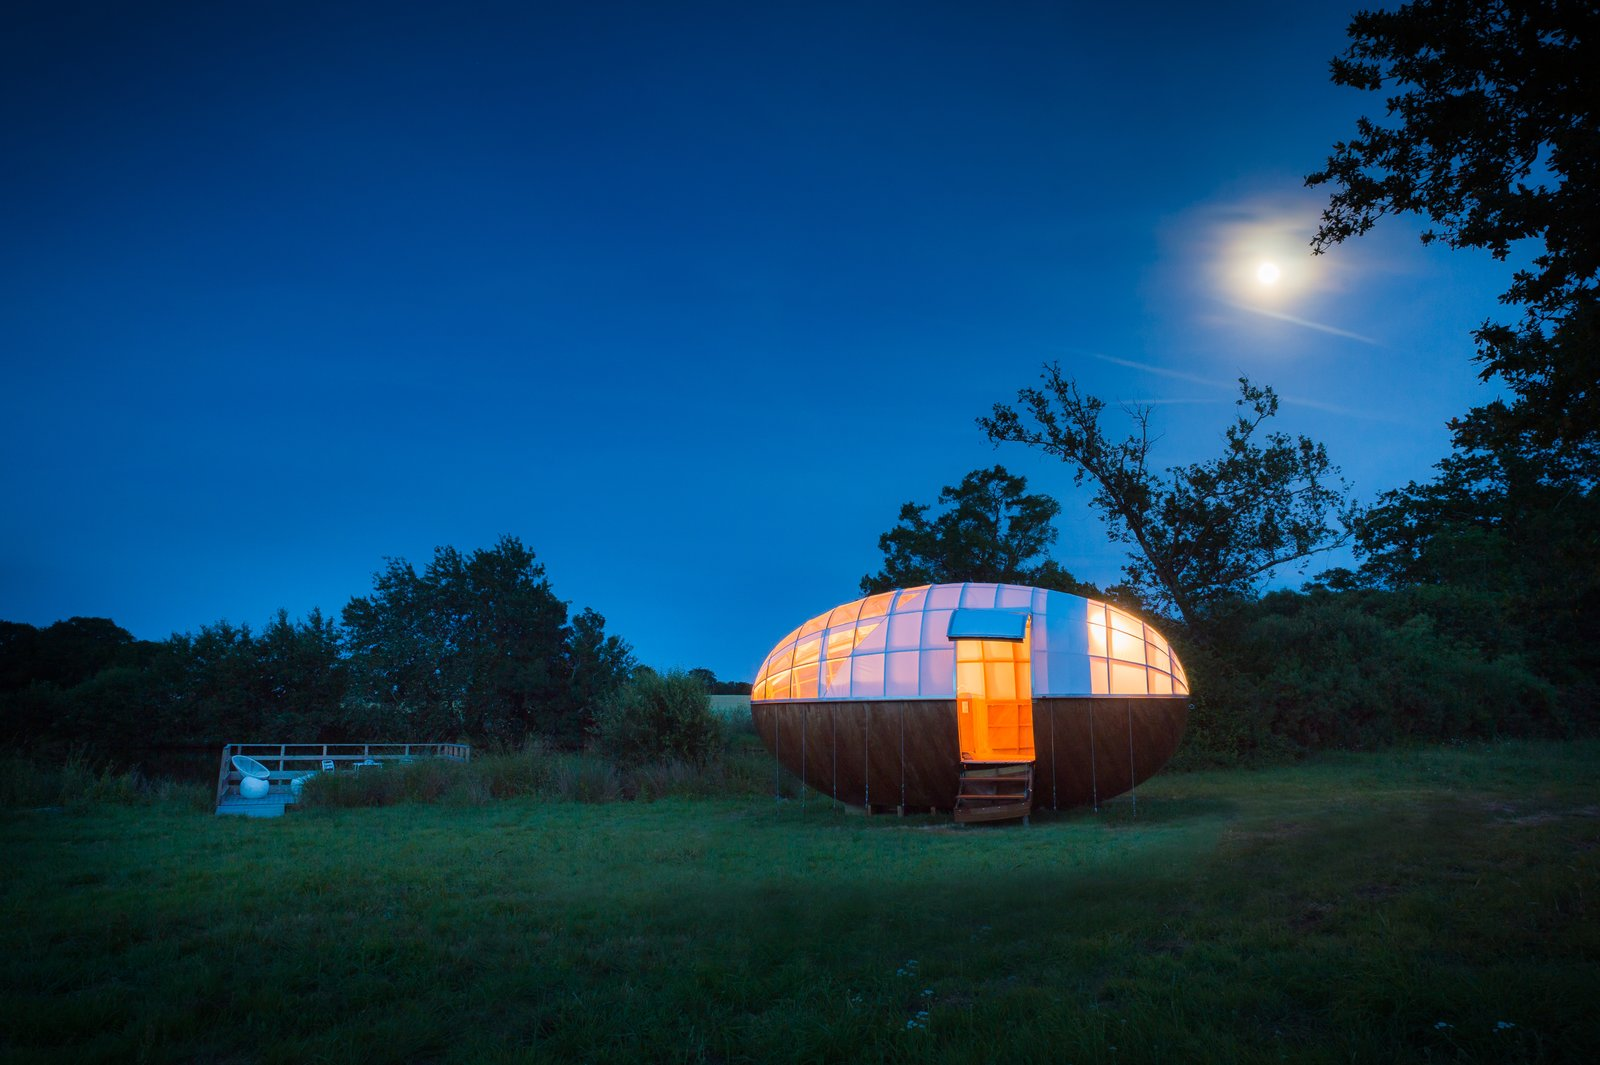 Exterior, Tiny Home Building Type, Small Home Building Type, House Building Type, Wood Siding Material, Curved RoofLine, and Dome RoofLine  Photo 5 of 7 in A Fantastic Egg-Shaped Camping Pod Along the Loire Estuary